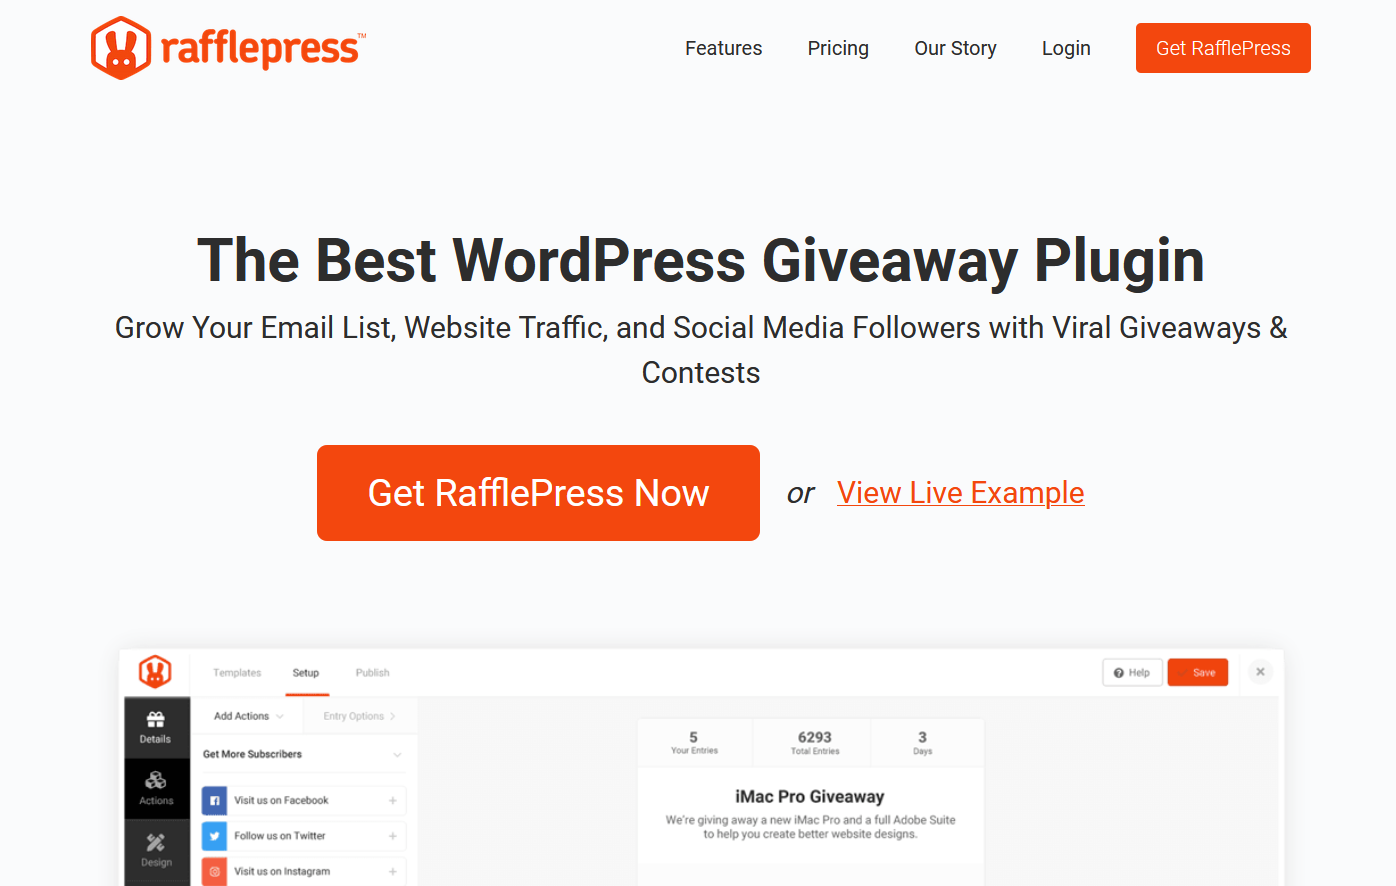 rafflepress wordpress giveaway plugin